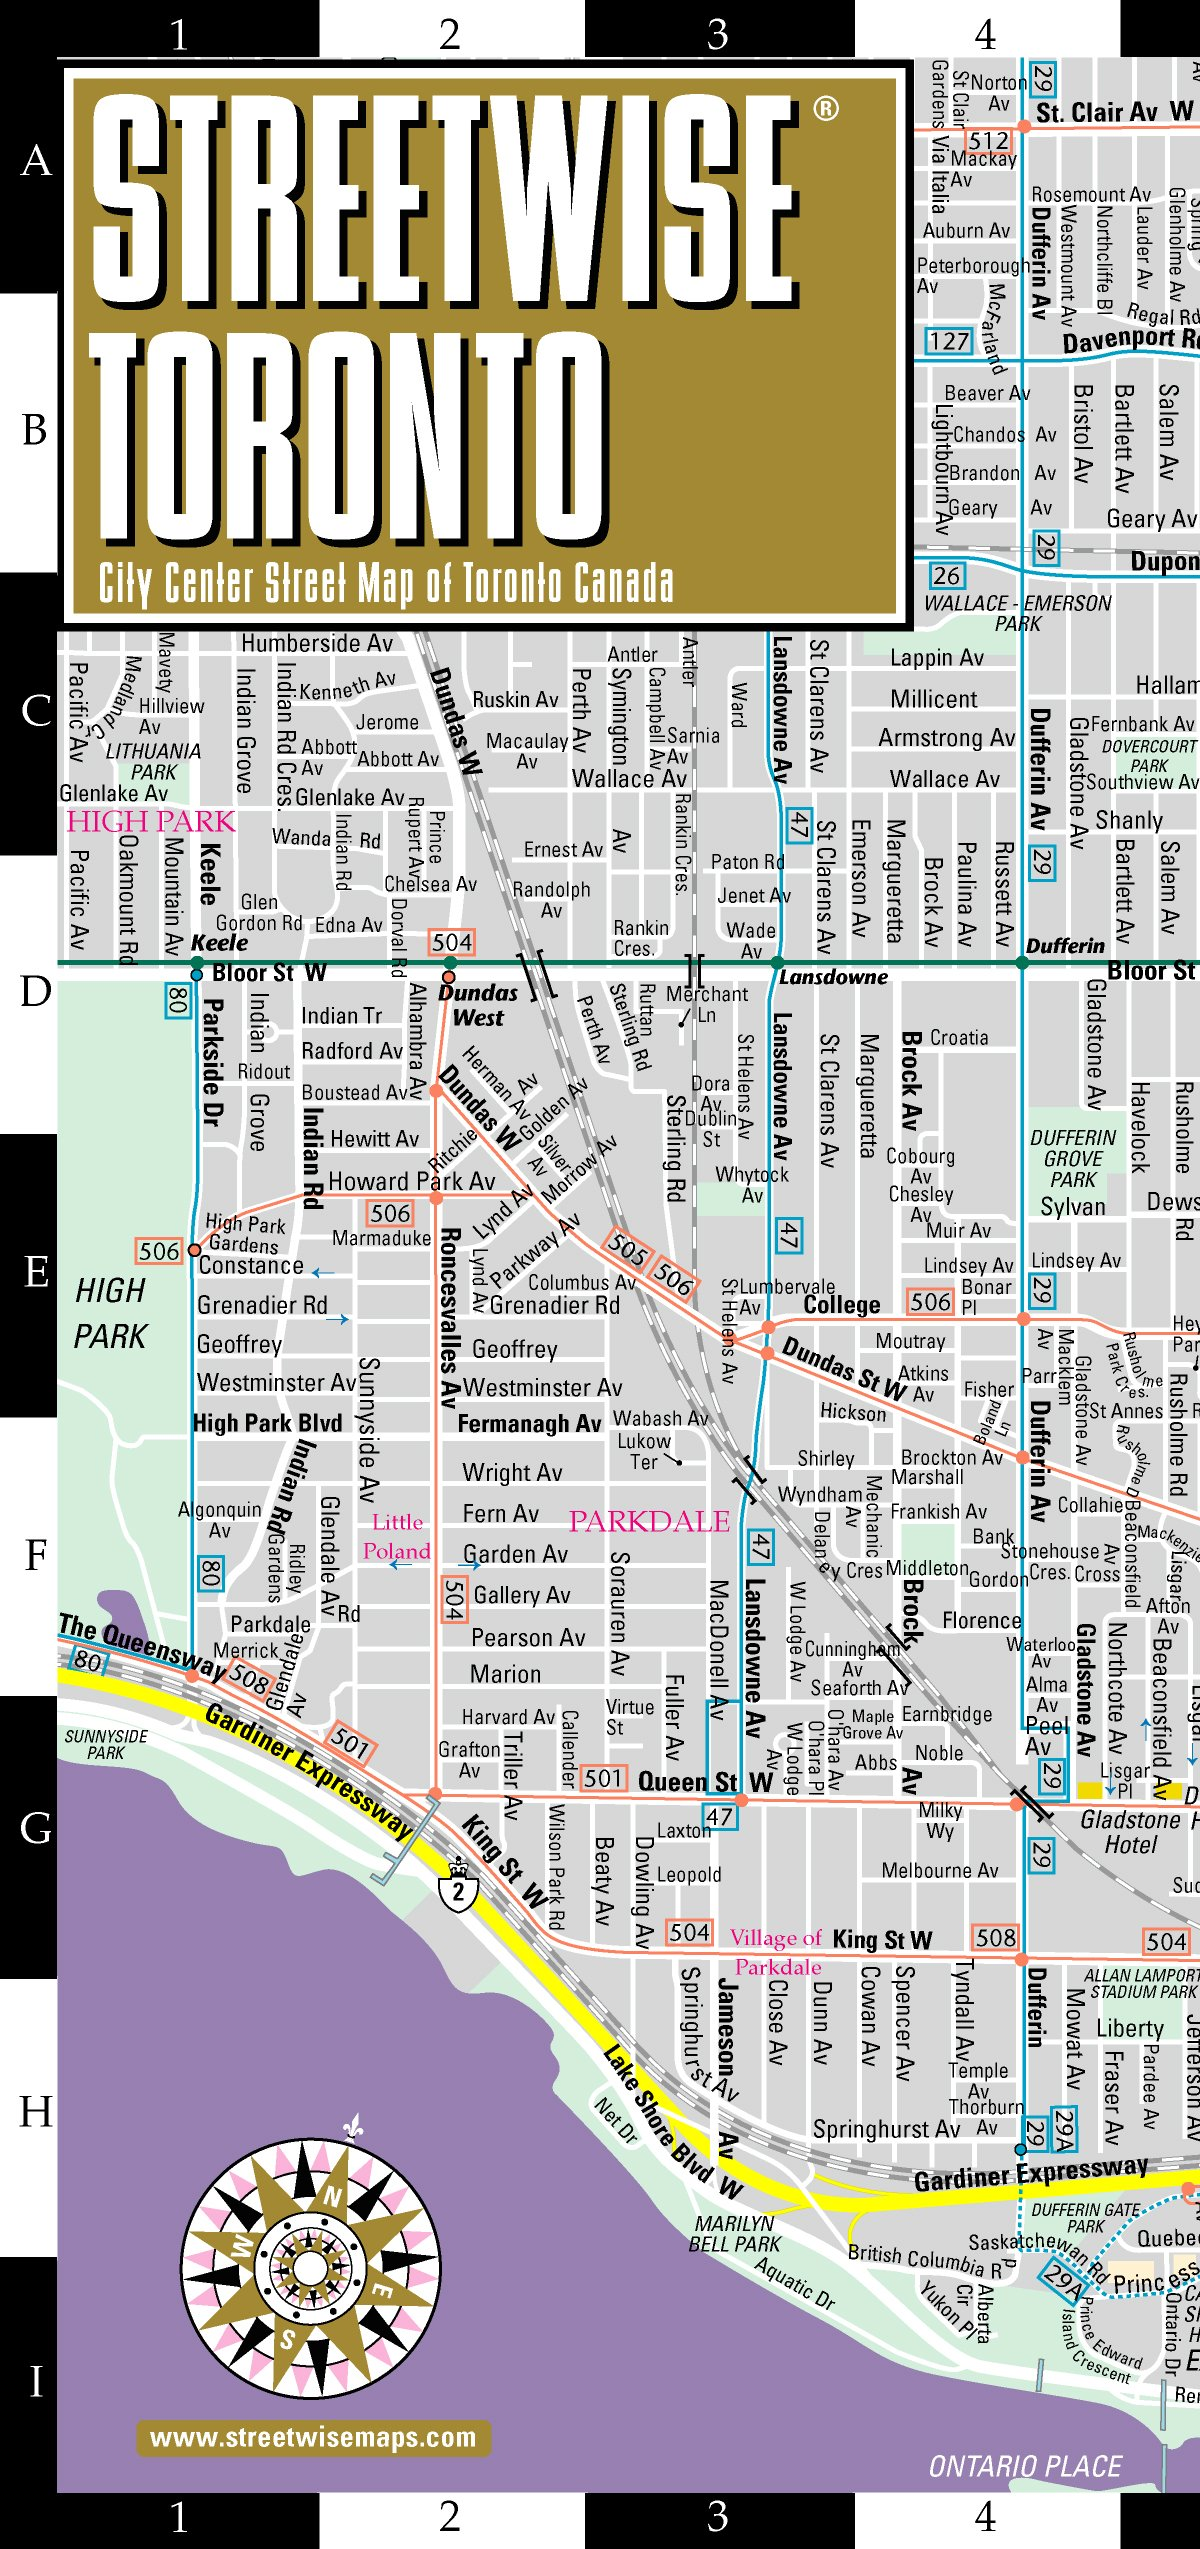 Streetwise Toronto Map - Laminated City Center Street Map of ...